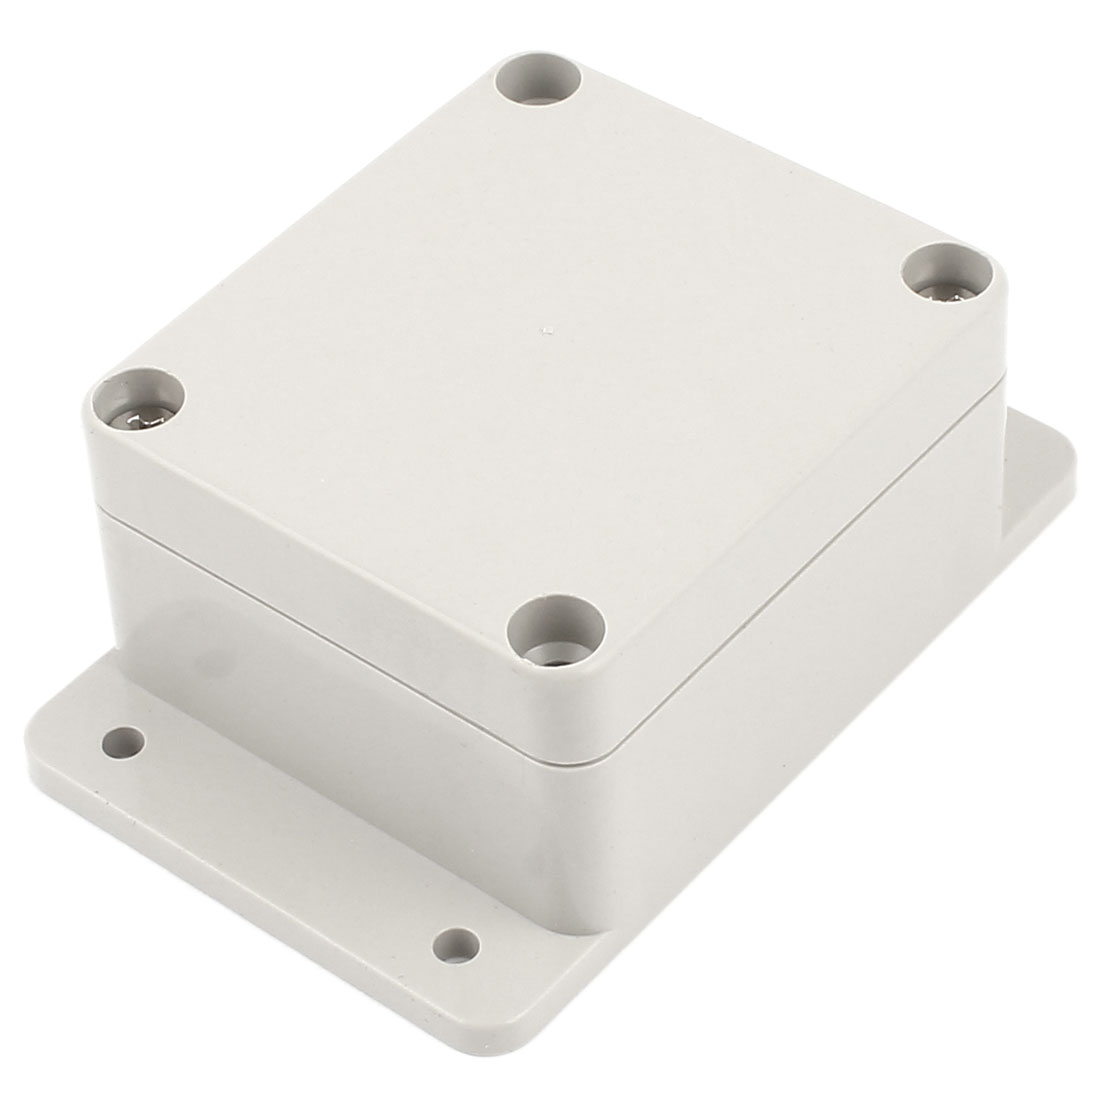 63mm x 58mm x 35mm Waterproof Plastic Sealed DIY Joint Electrical Junction Box